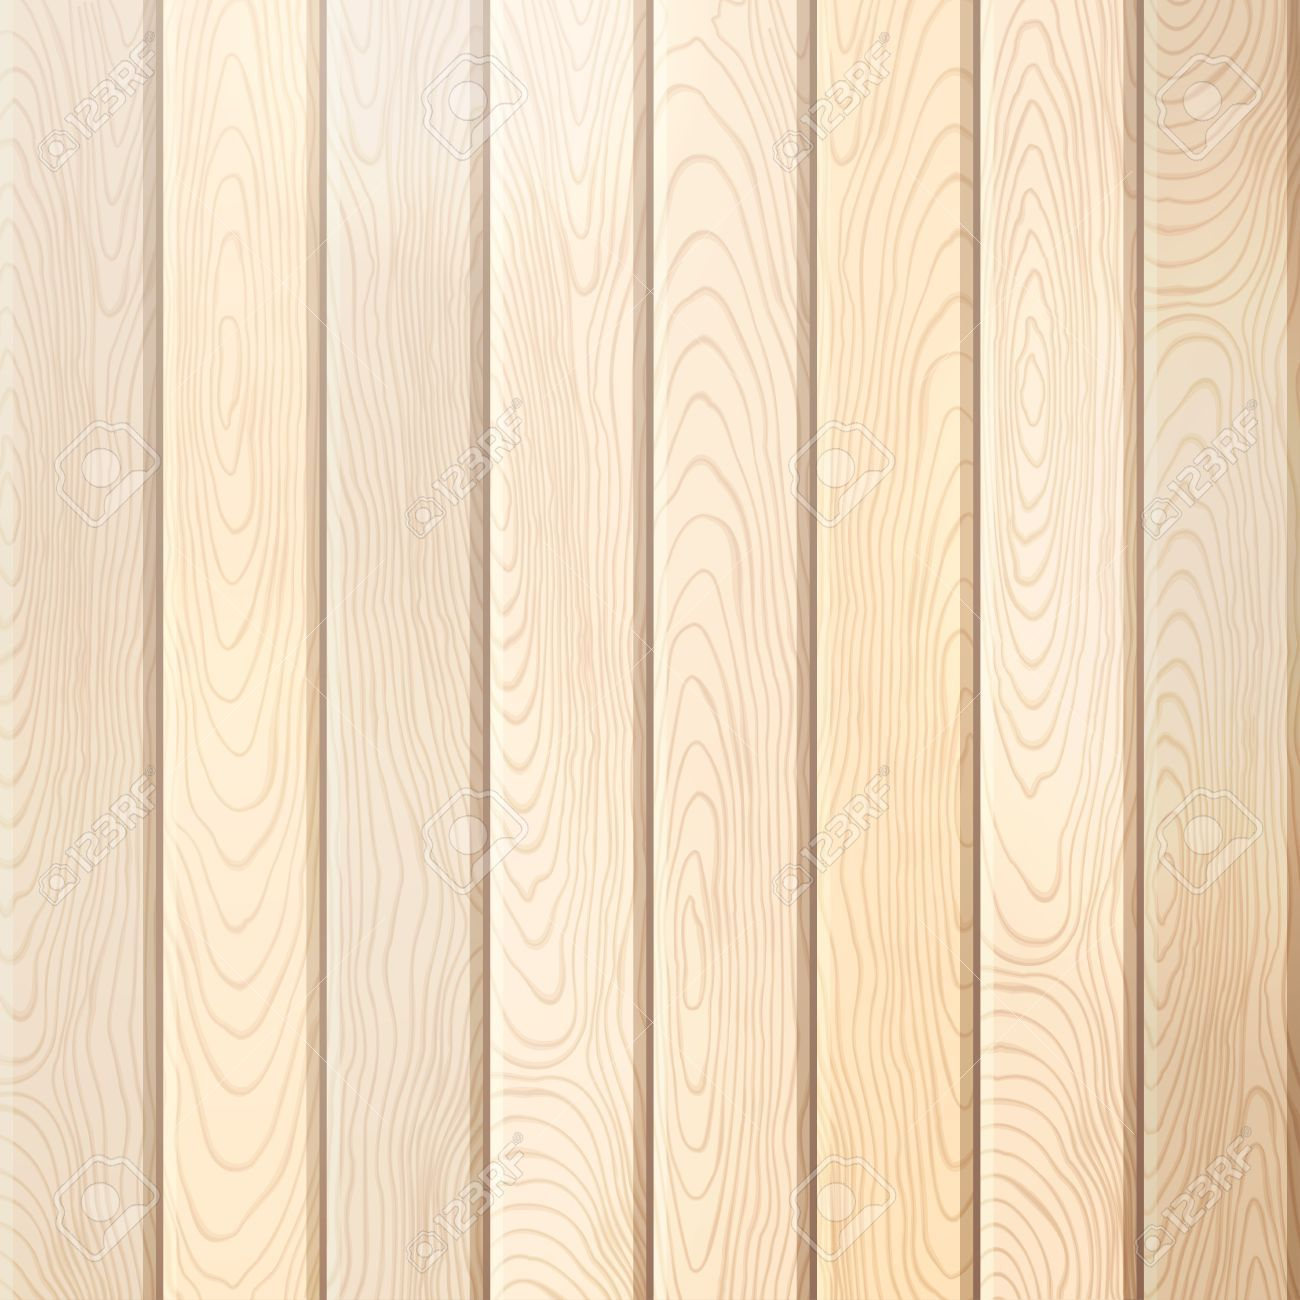 Pine Wood Plank Background. Vector Bright Square